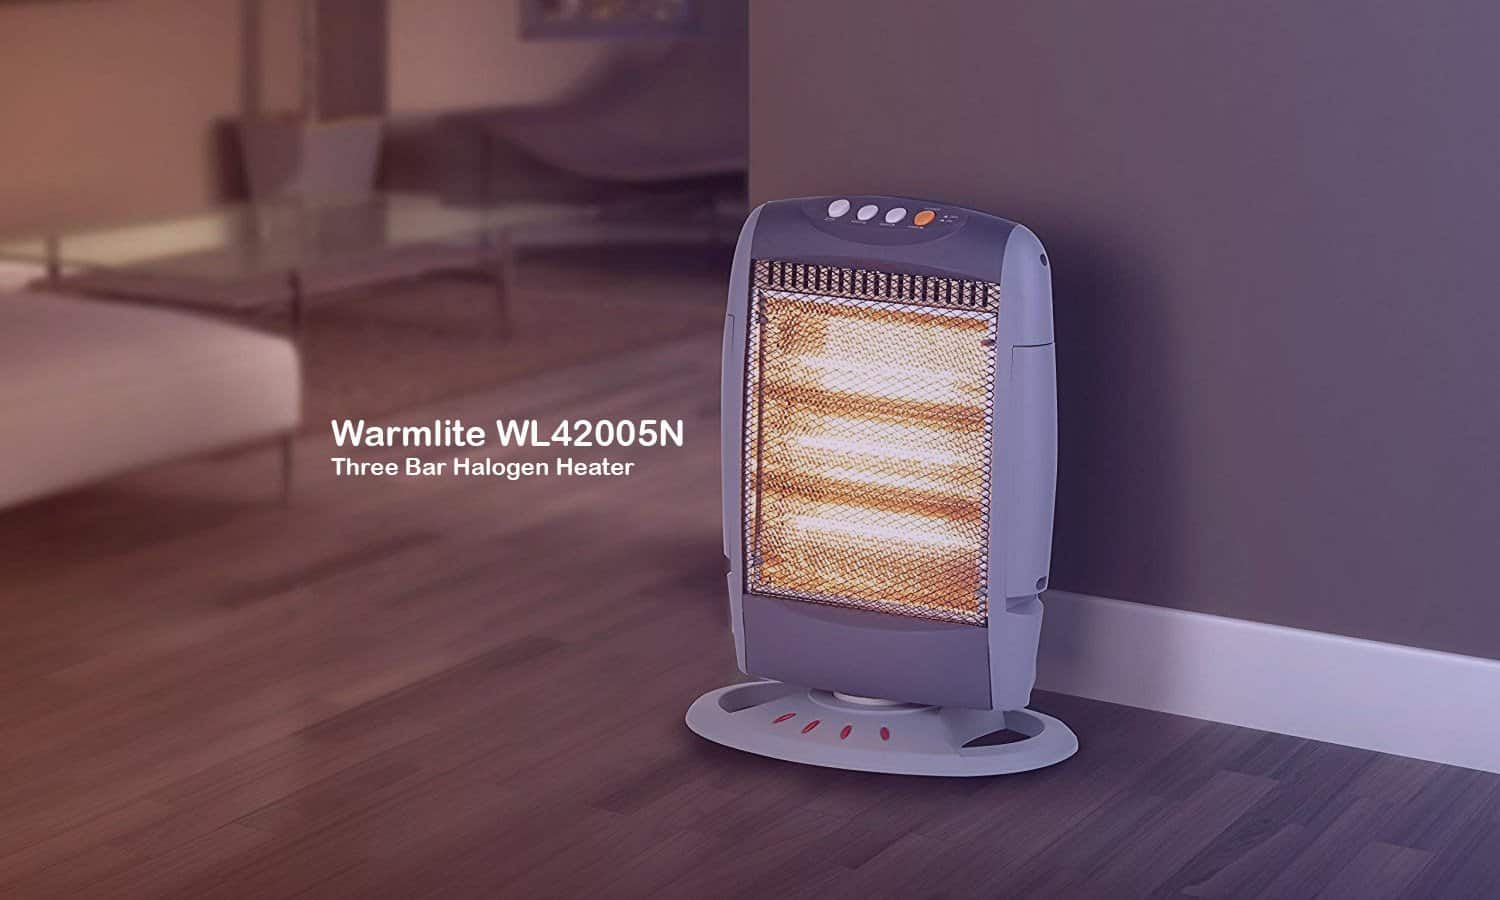 Warmlite WL42005N - Best Electric Halogen Heater